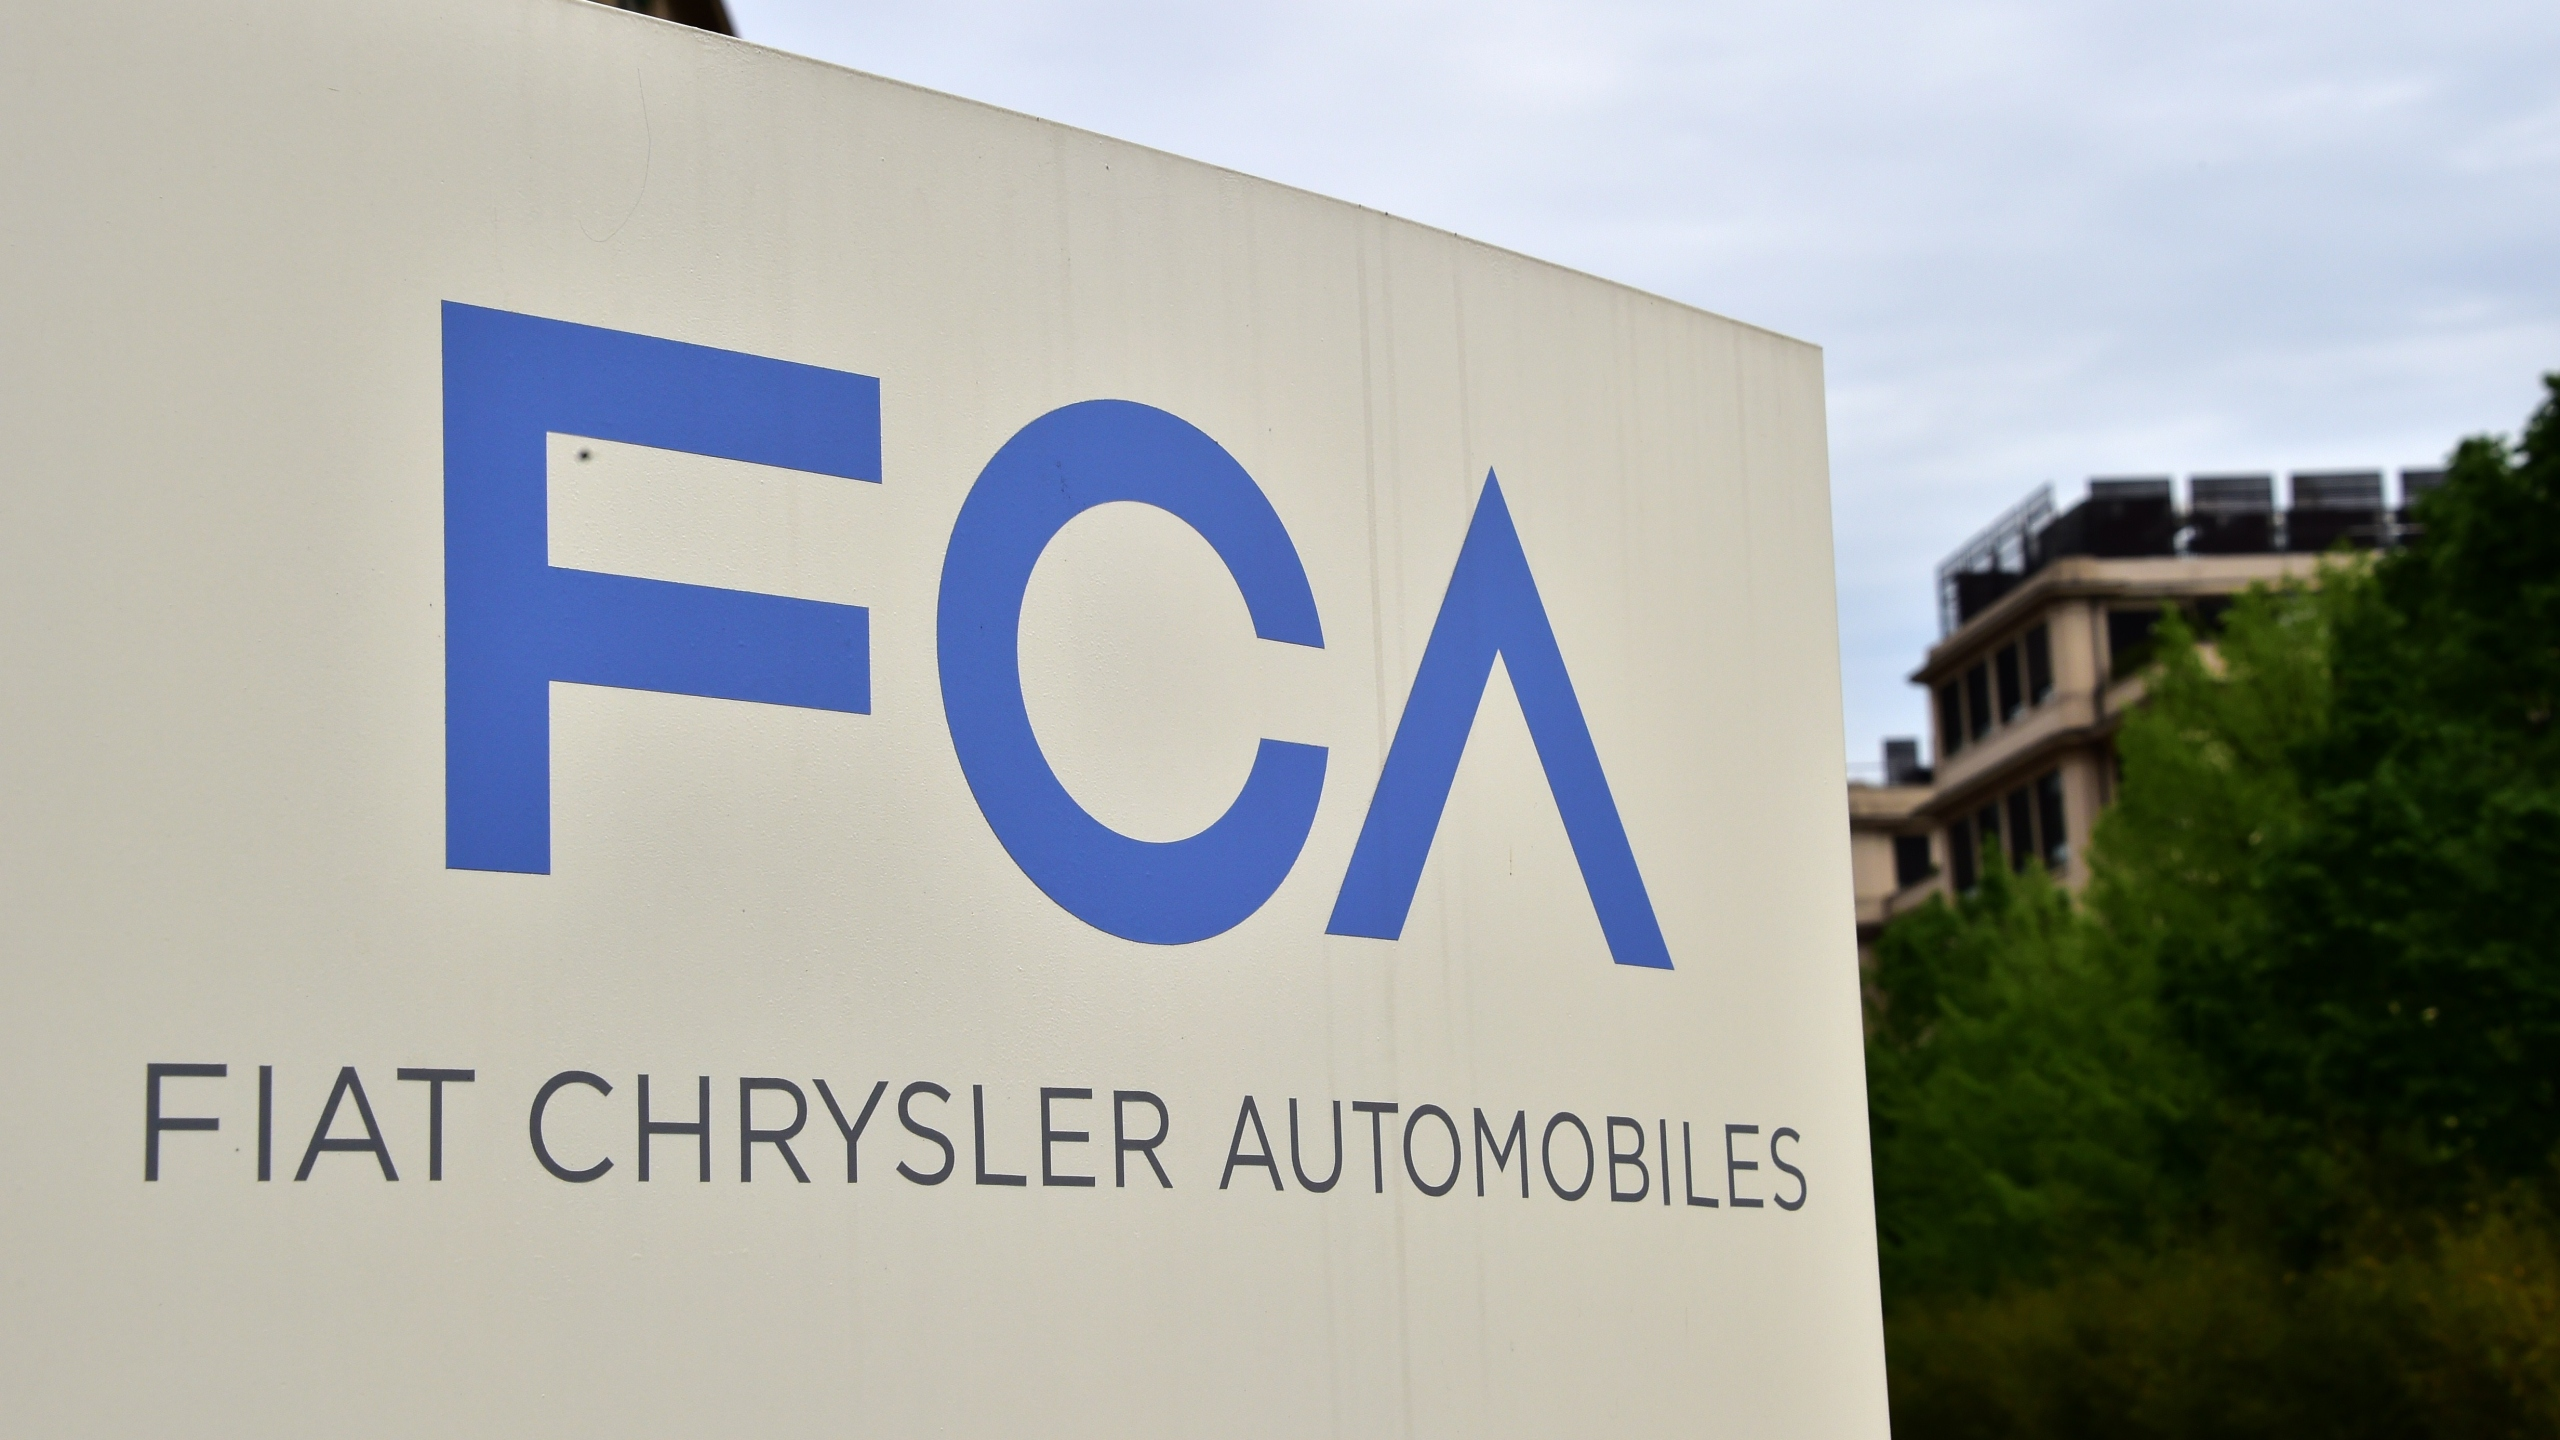 A picture shows the Fiat Chrysler Automobiles (FCA) logo at the entrance of the headquarters, on April 19, 2015 in Turin. (Photo: GIUSEPPE CACACE/AFP/Getty Images)